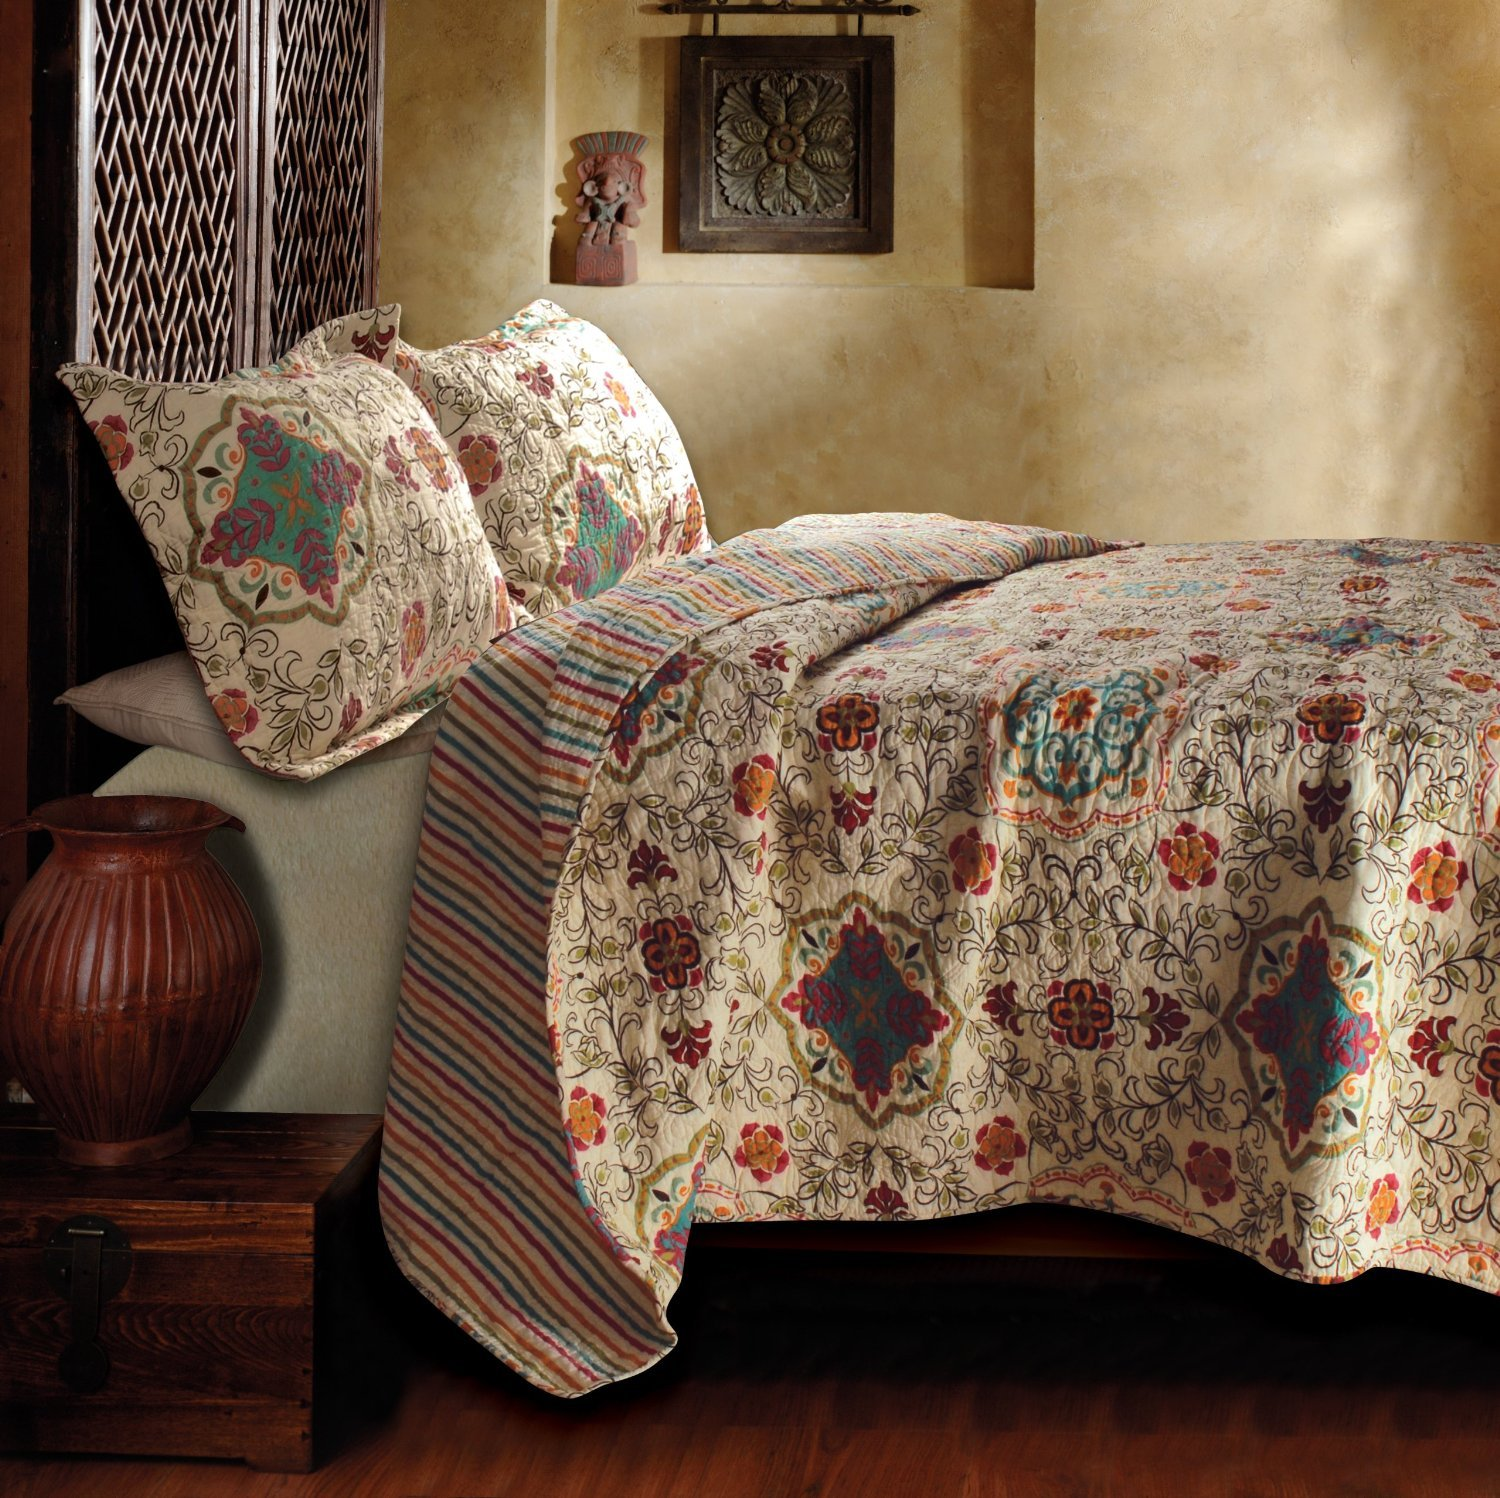 bohemian 3pc queen quilt coverlet set floral paisley